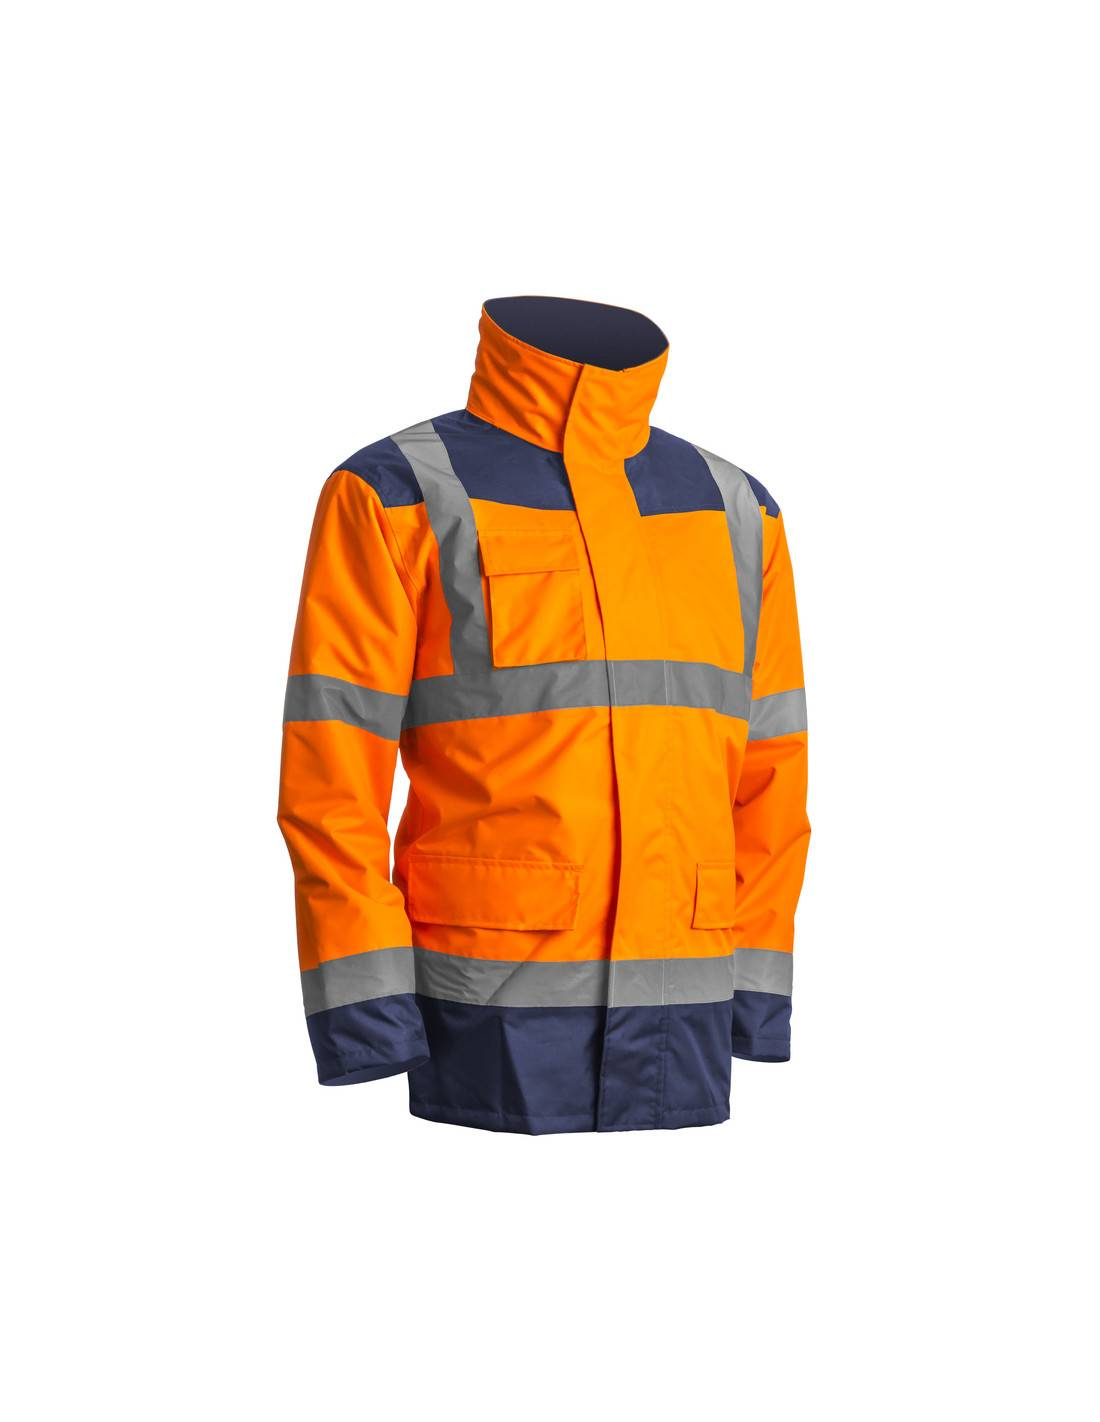 Parka 4 en 1 Coverguard Kanata HI-VIZ jaune ou orange fluo - EUROPROTECTION